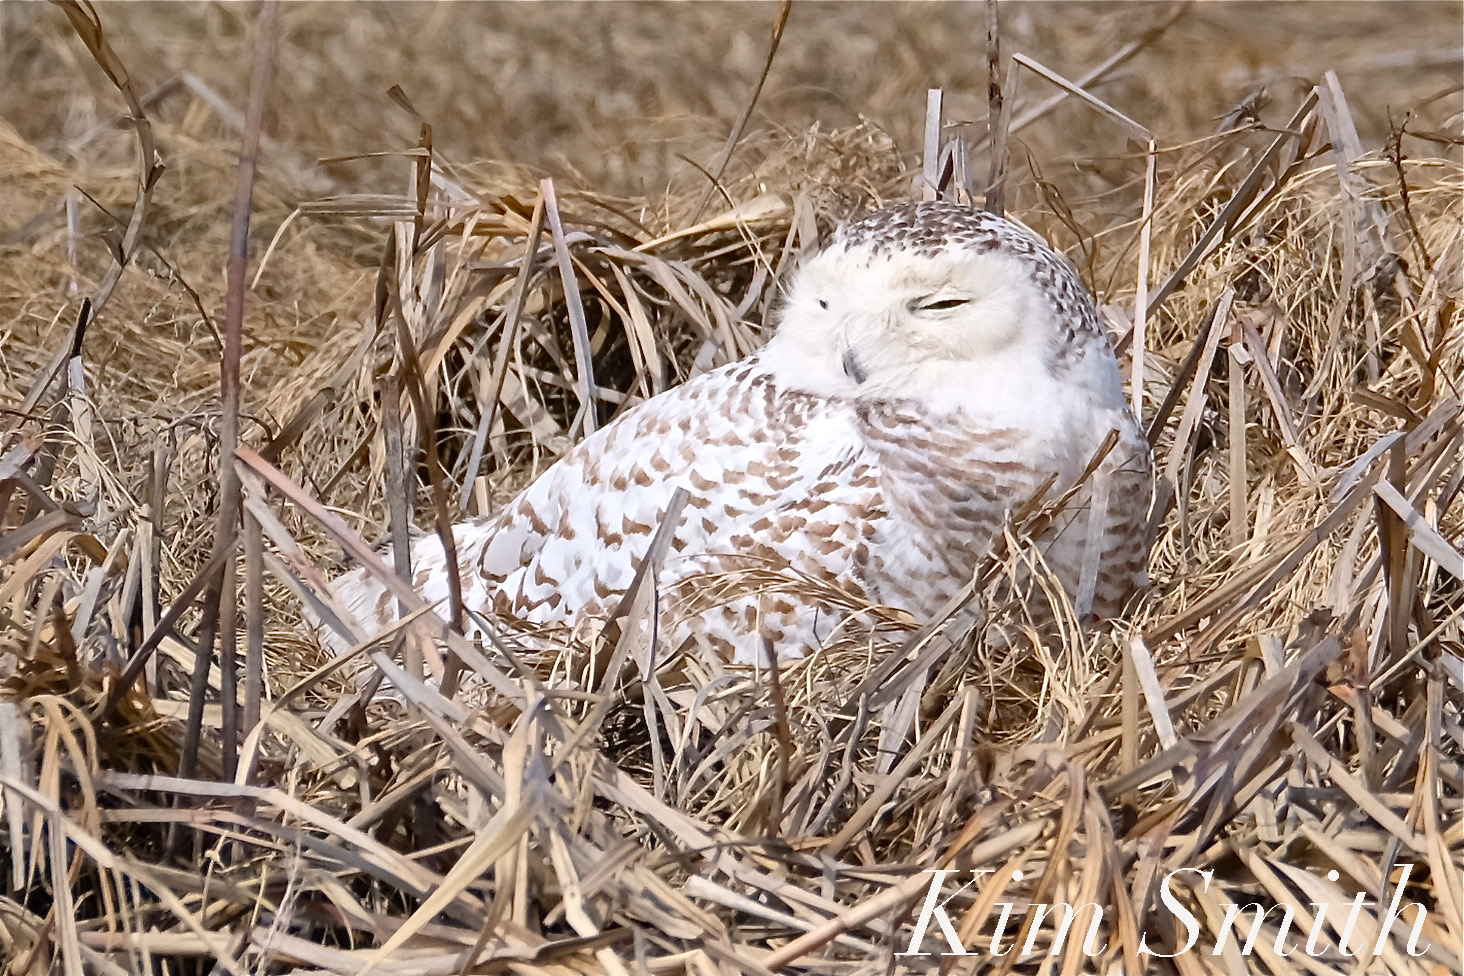 Female snowy owl kim smith designs came upon a snowy owl in the marsh with very similar feather patterning around the face i think she is the same snowy that was released in the video biocorpaavc Choice Image